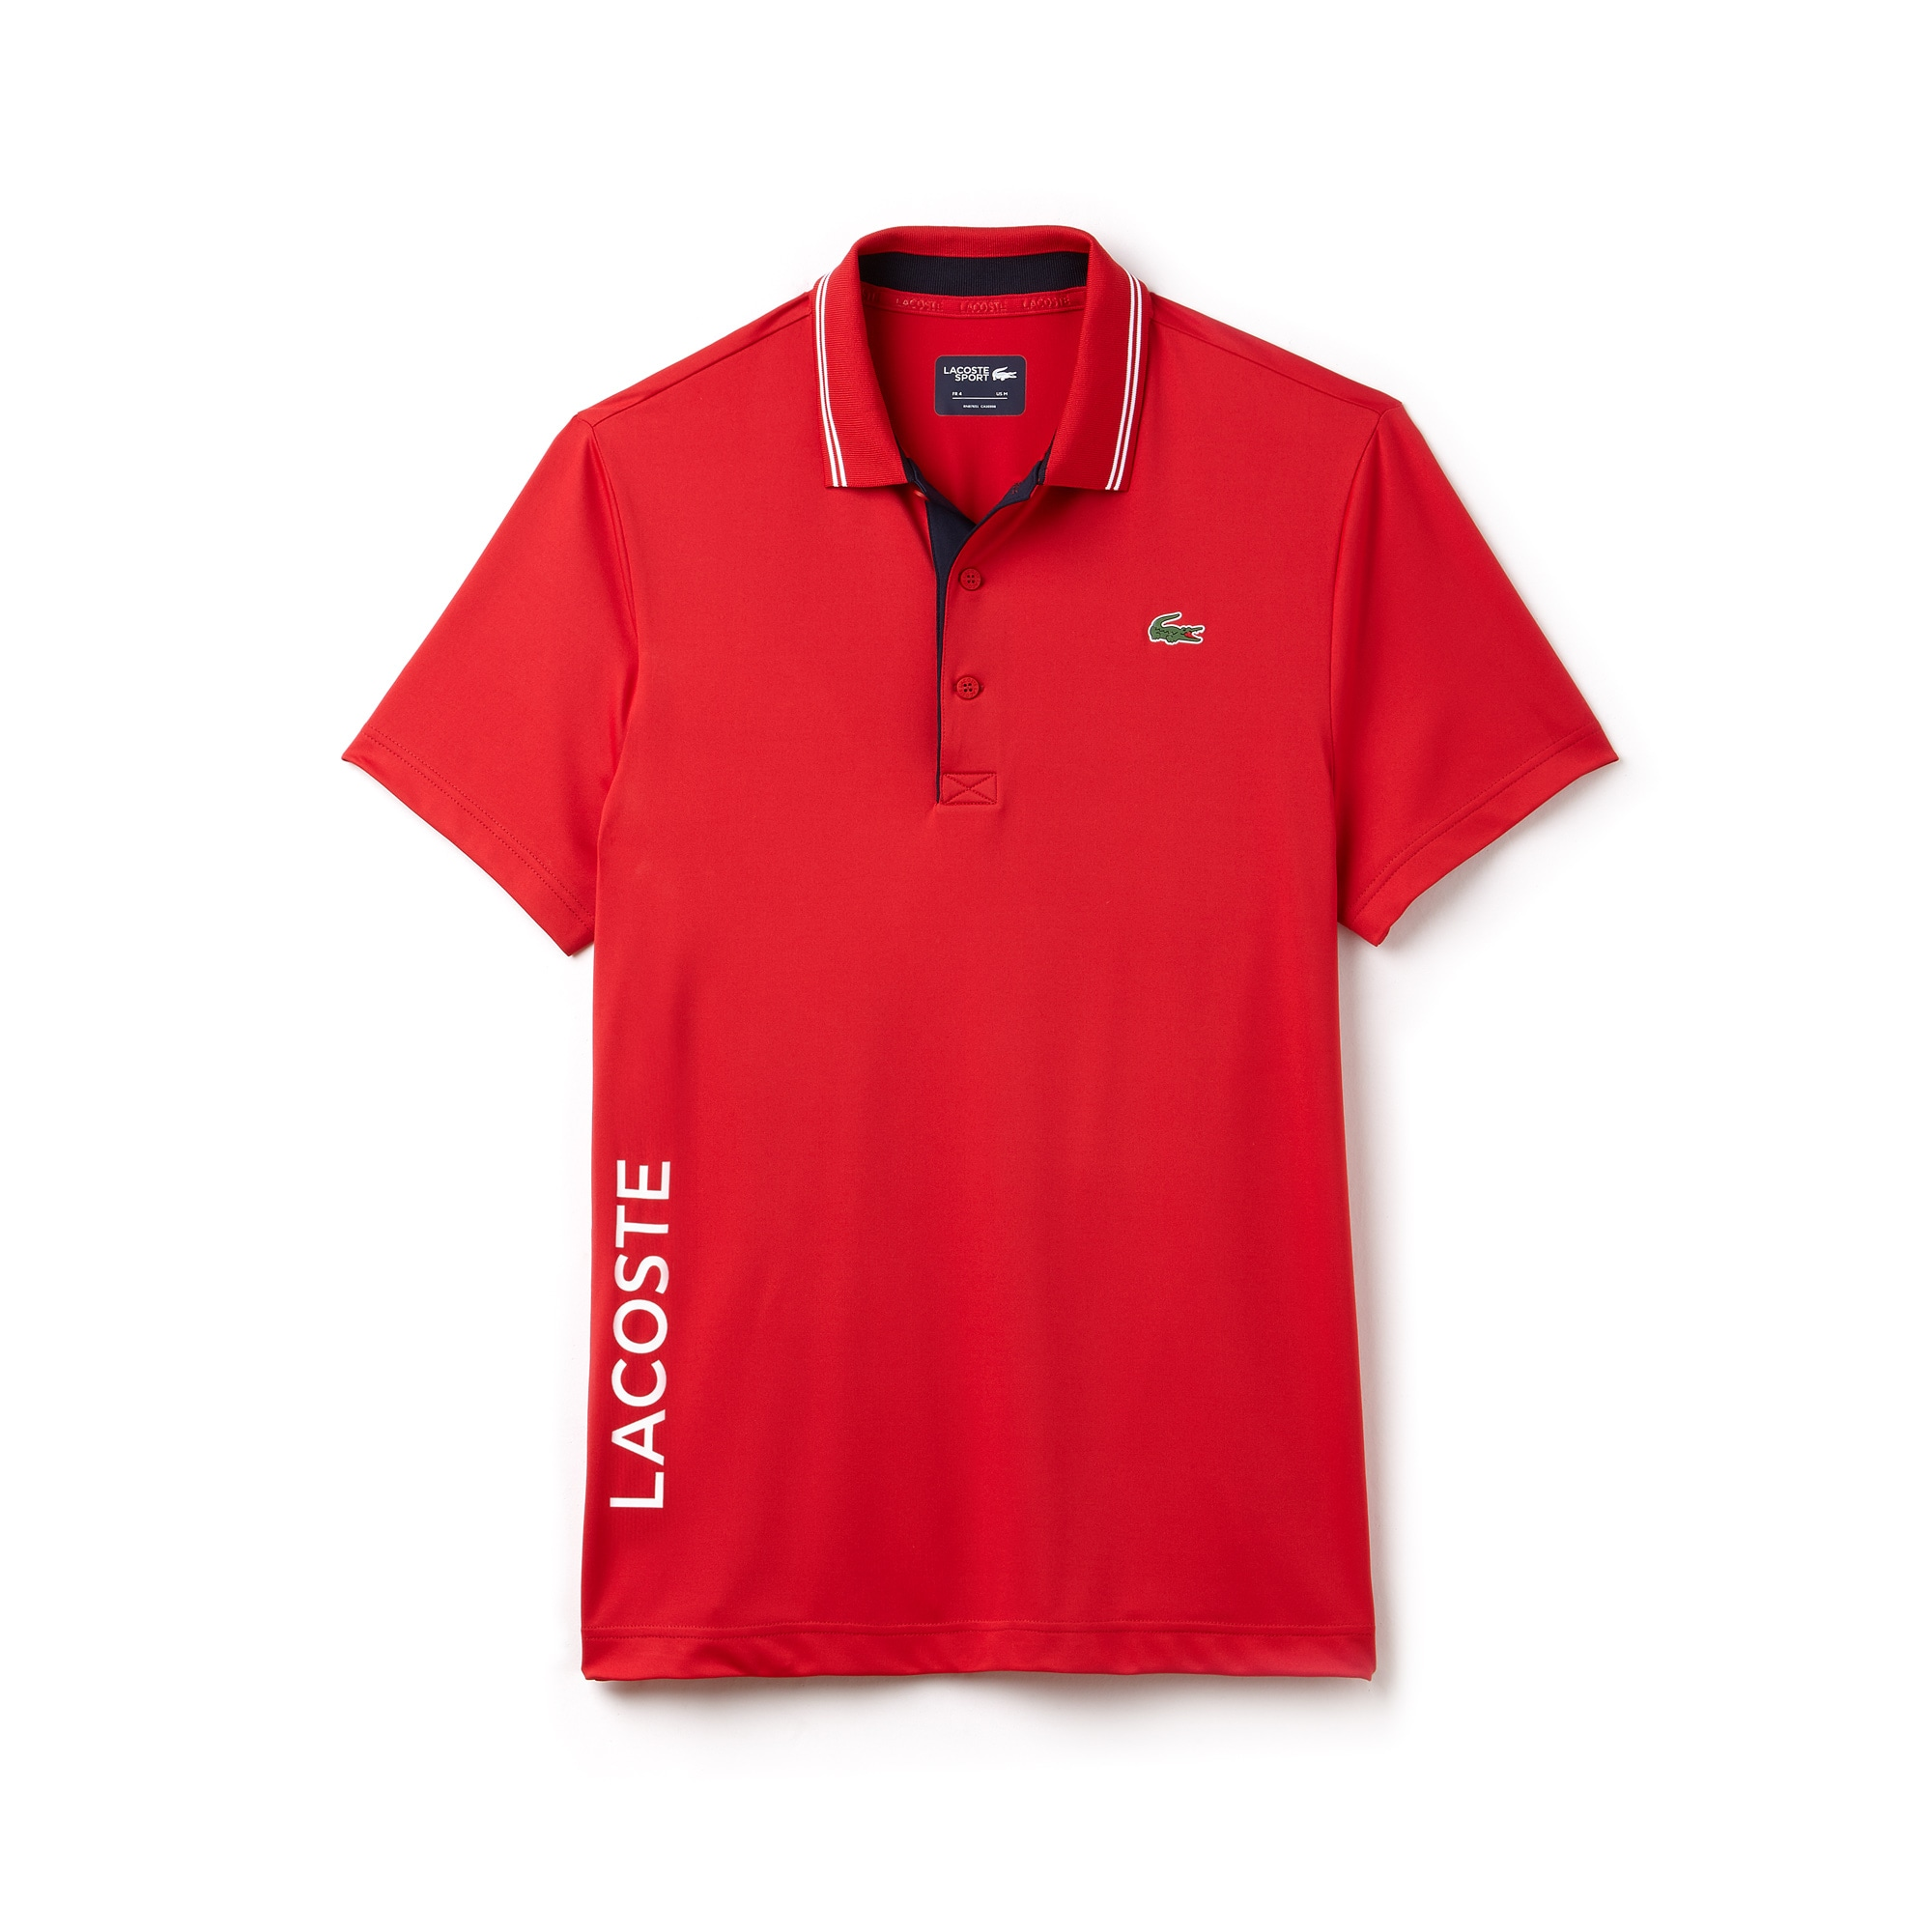 Men's SPORT Lettering Stretch Golf Polo